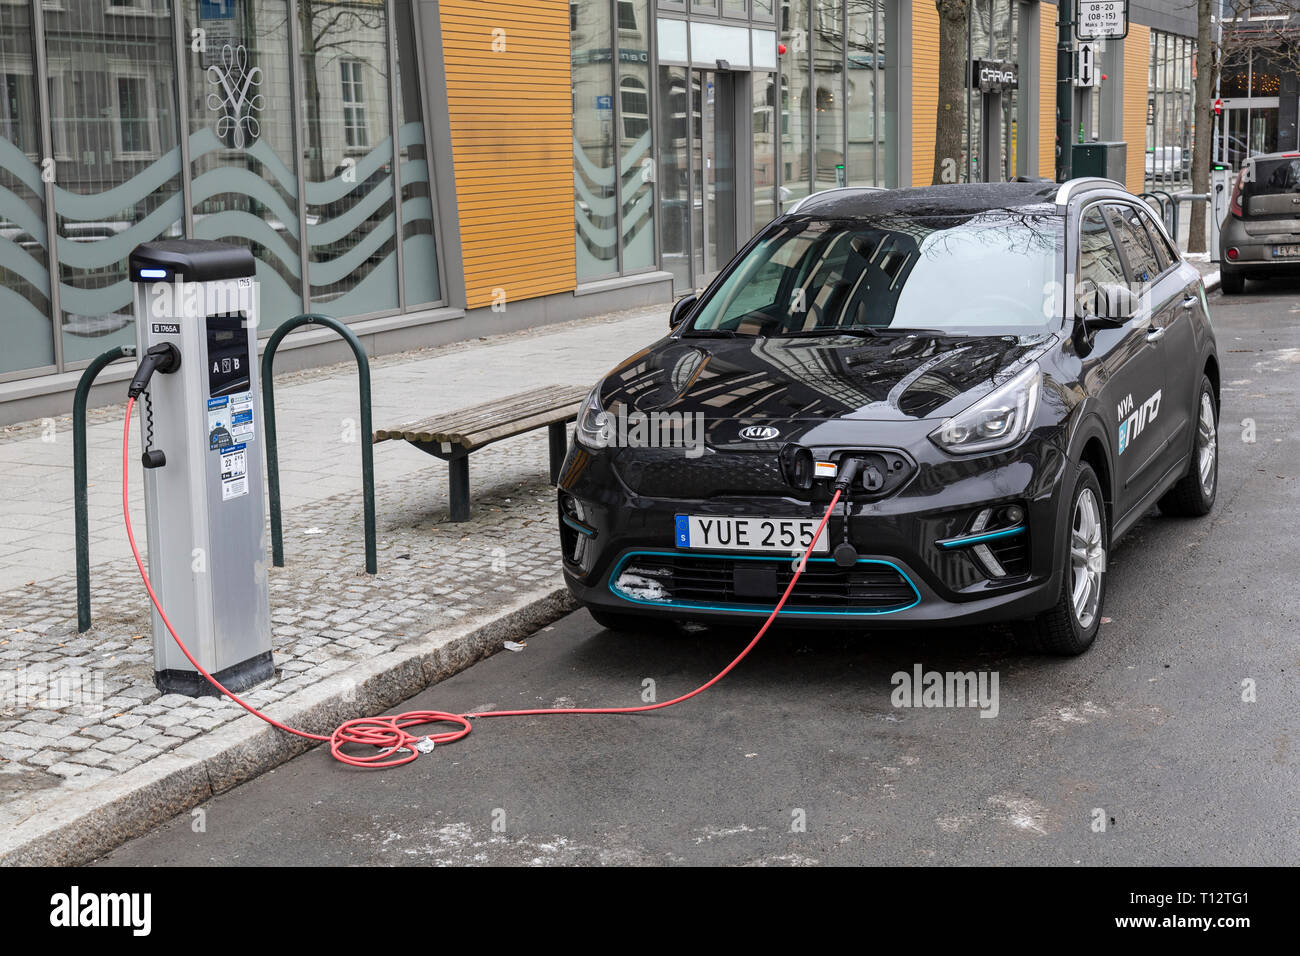 A Kia Niro Plug In Hybrid car attached to an electrical charging station by the side of a road in the town of Trondheim in Norway. Stock Photo